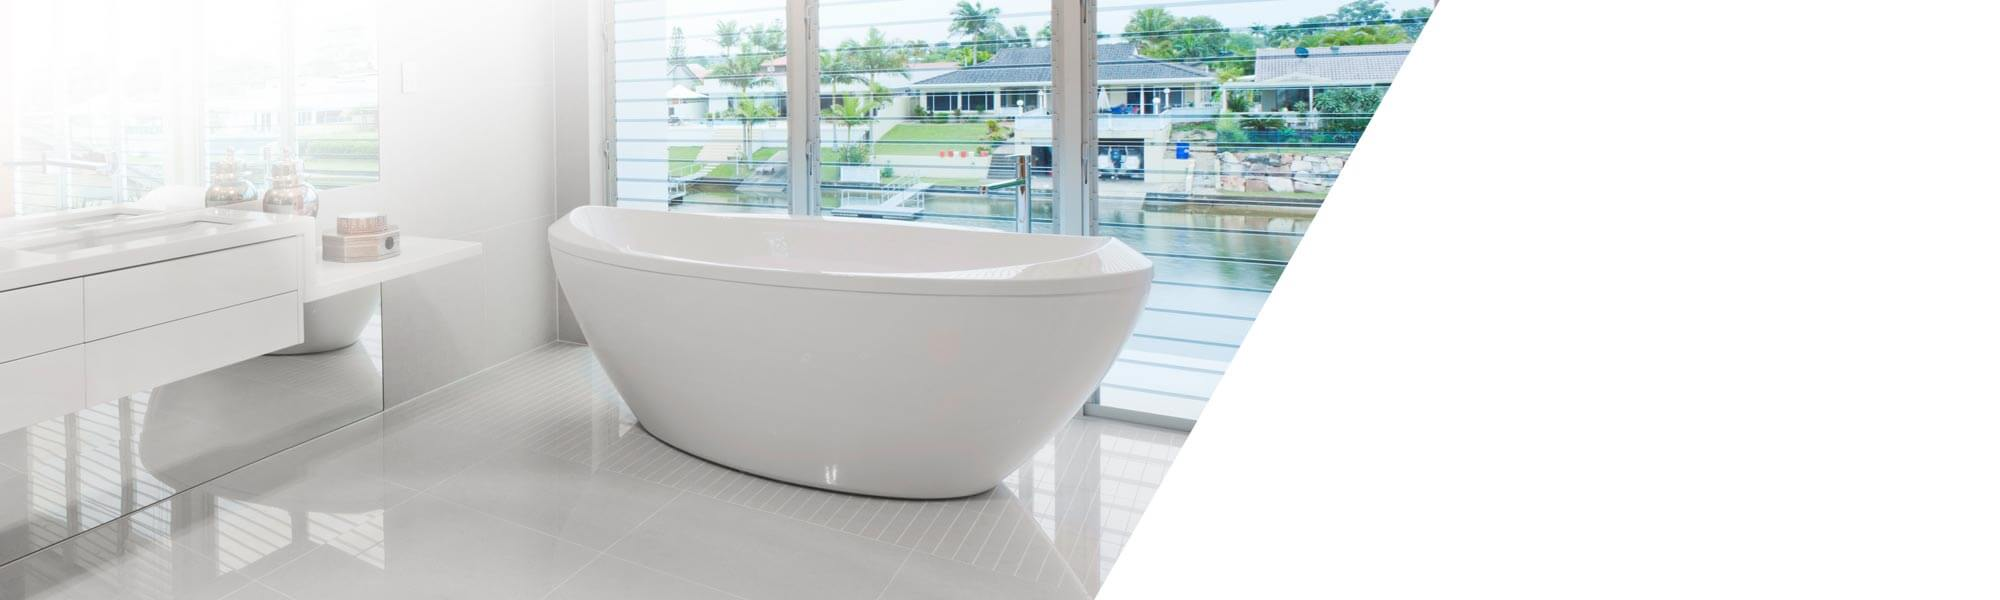 Reinforcement of bathtubs and shower trays